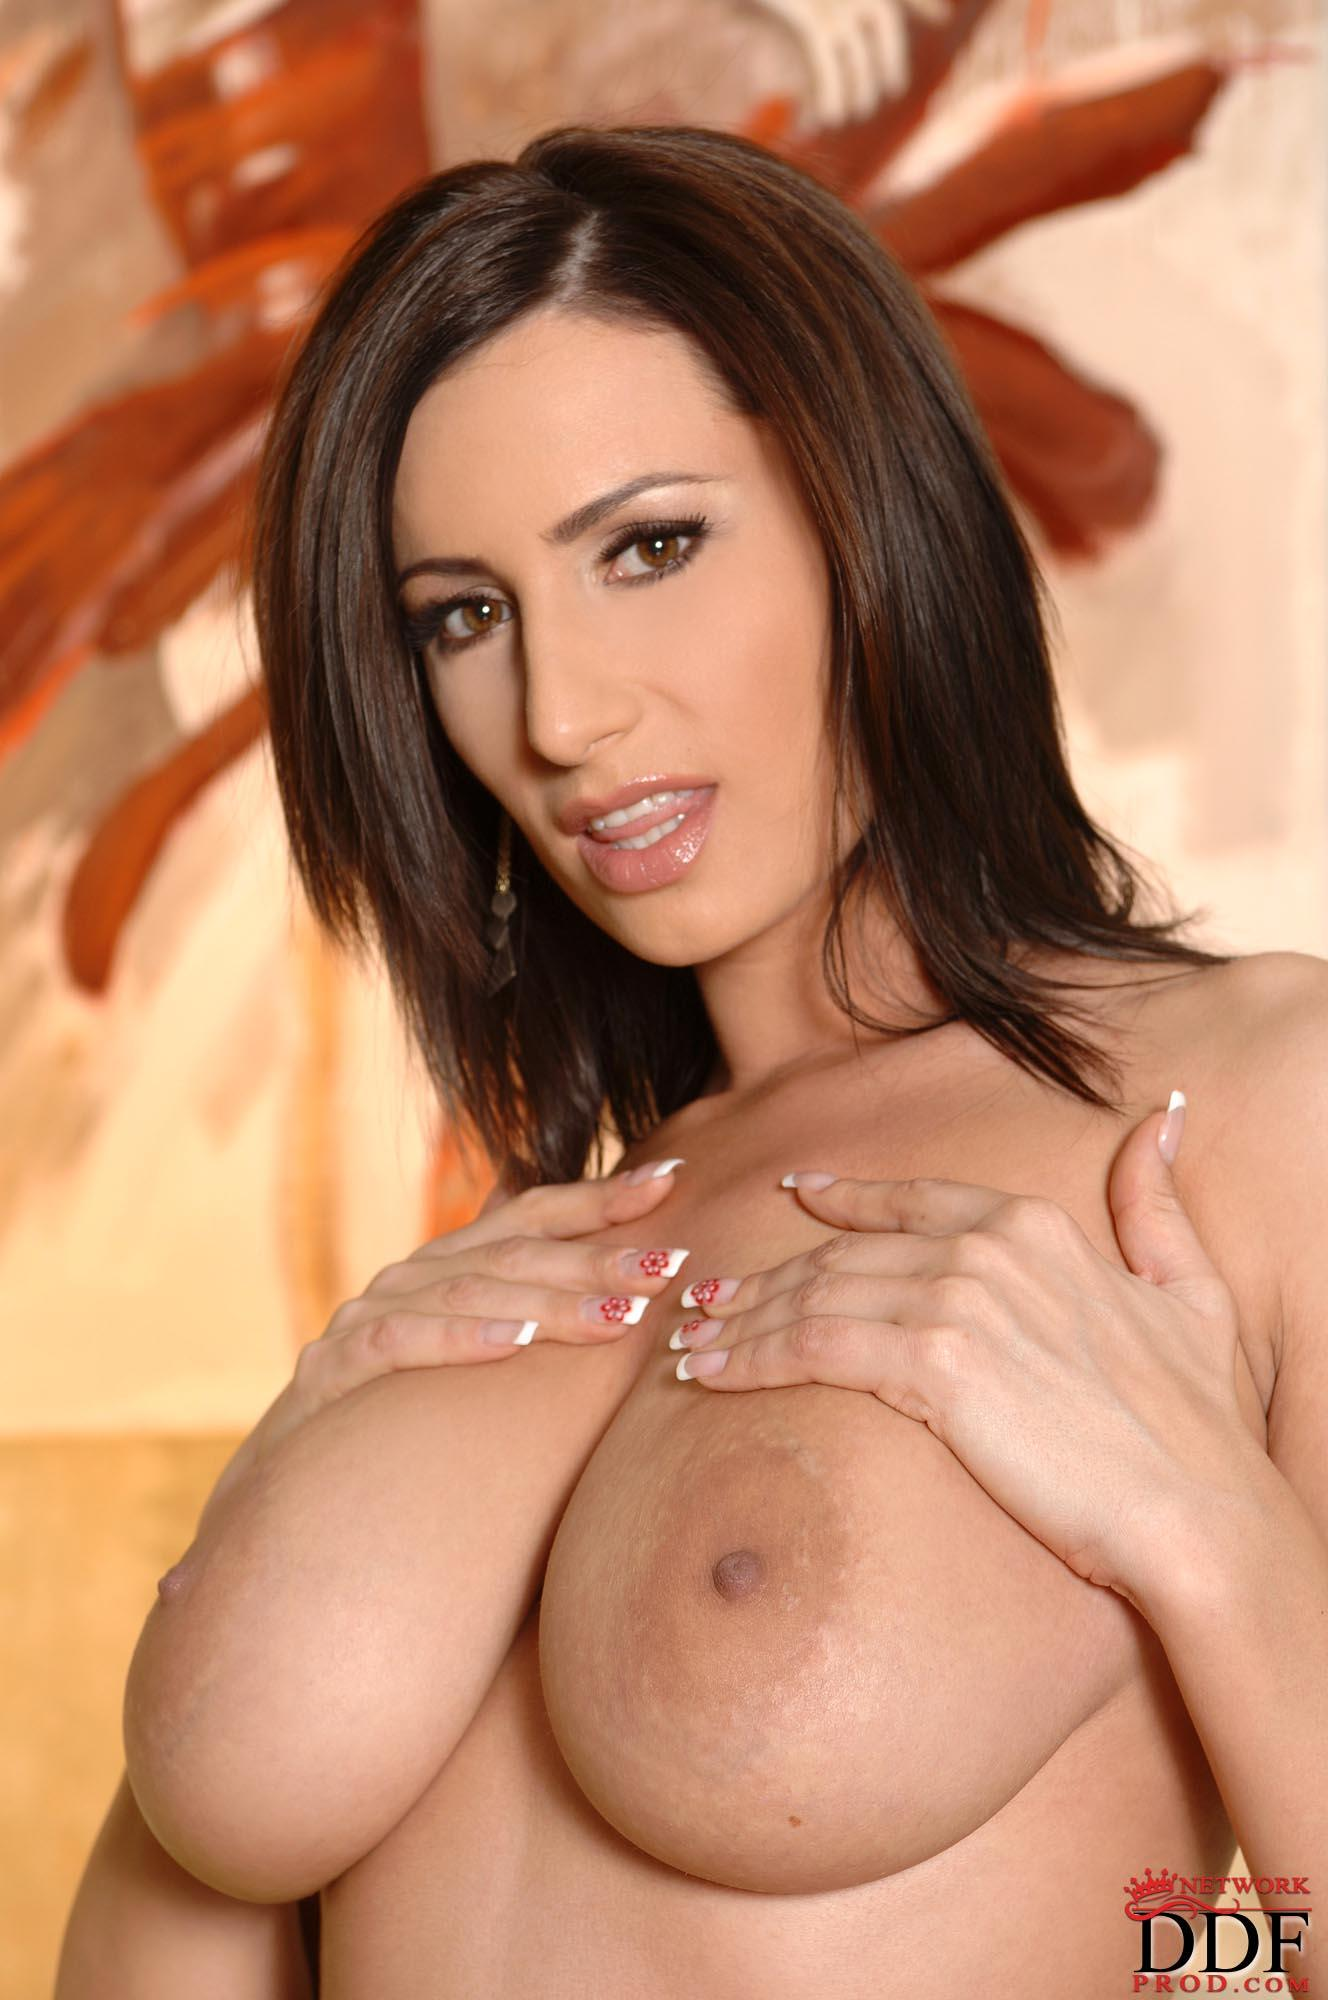 busty-mature-shaved-milf-from-ddf-16.jpg